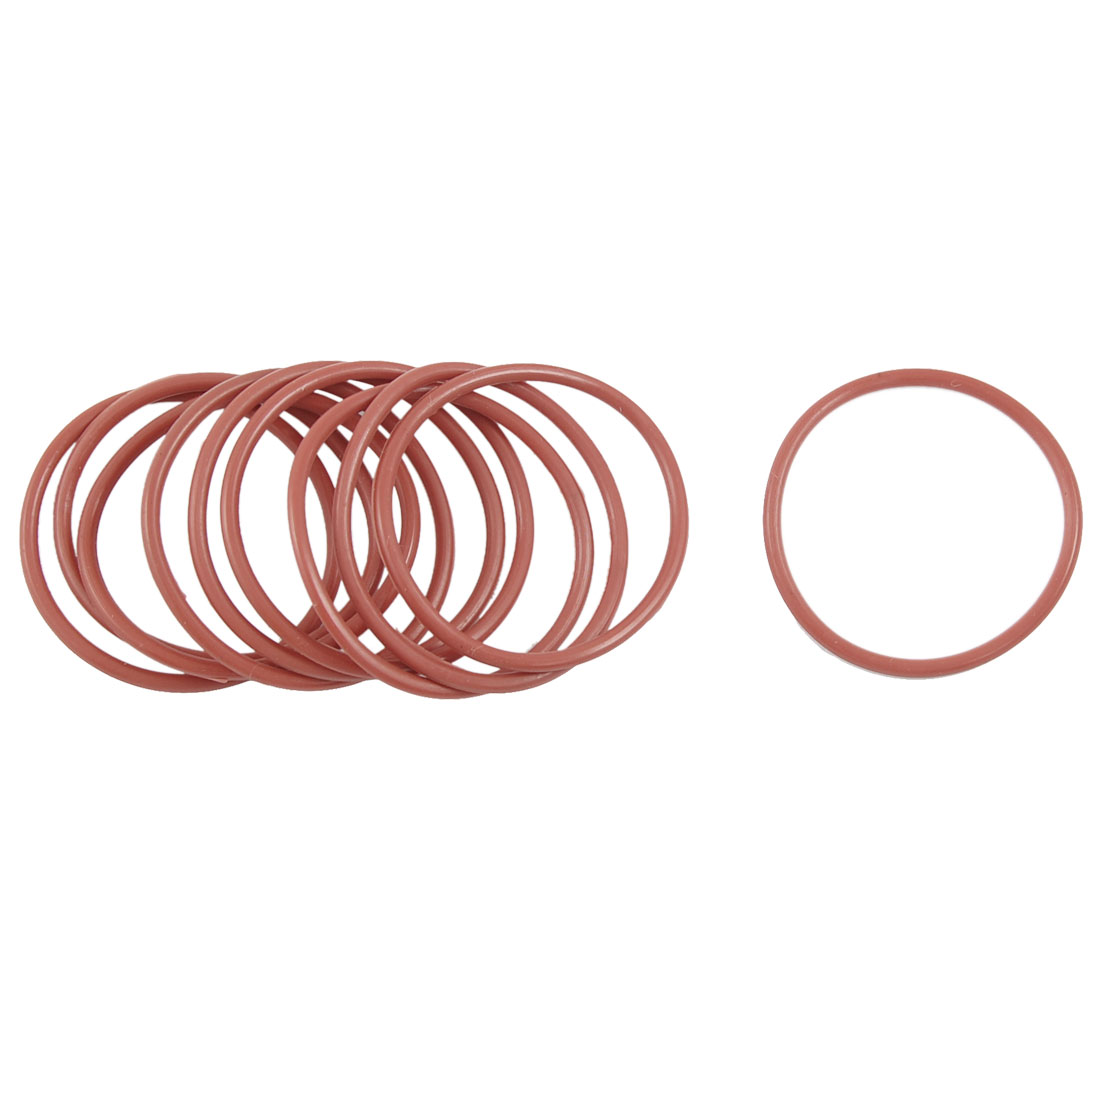 10 Pcs 35mm OD 2mm Thickness Dark Red Silicone O Ring Oil Seals Gaskets